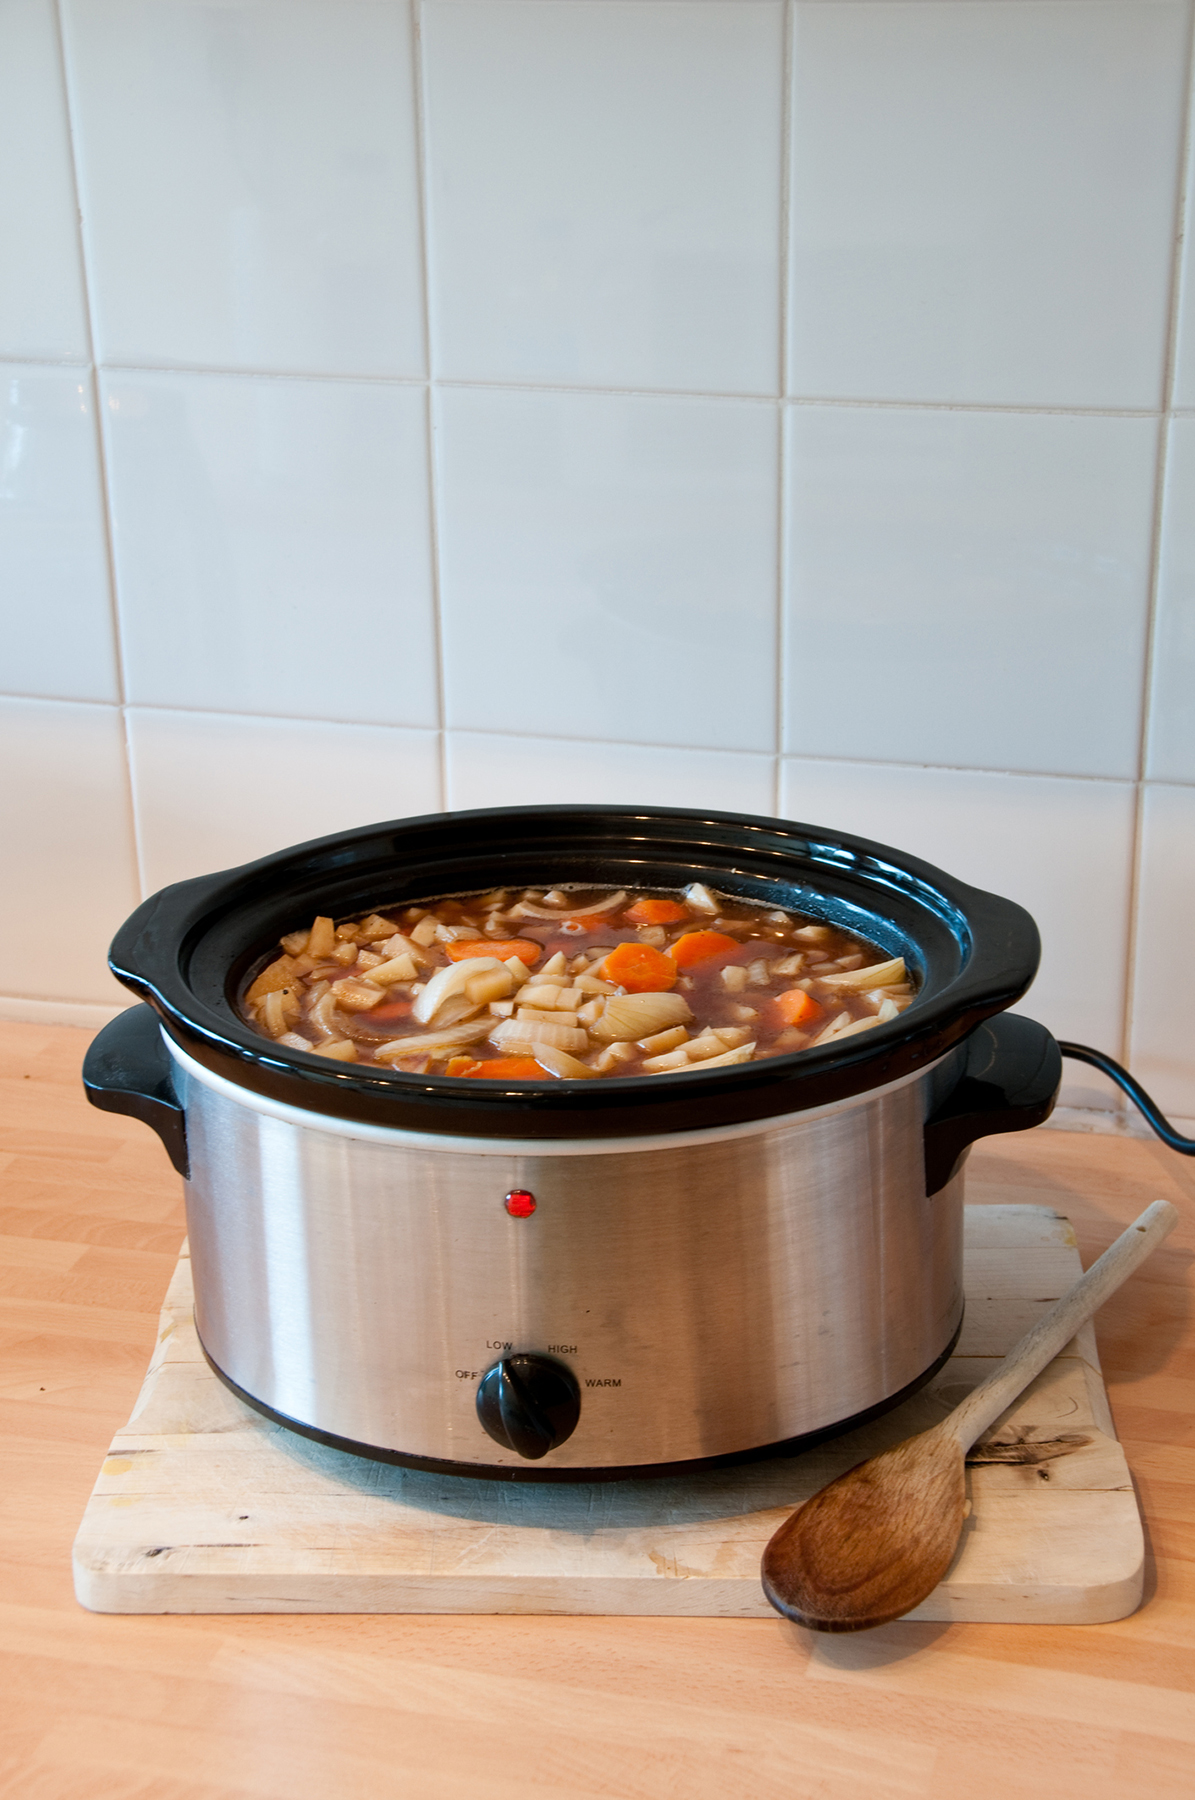 Slow Cooker With Soup